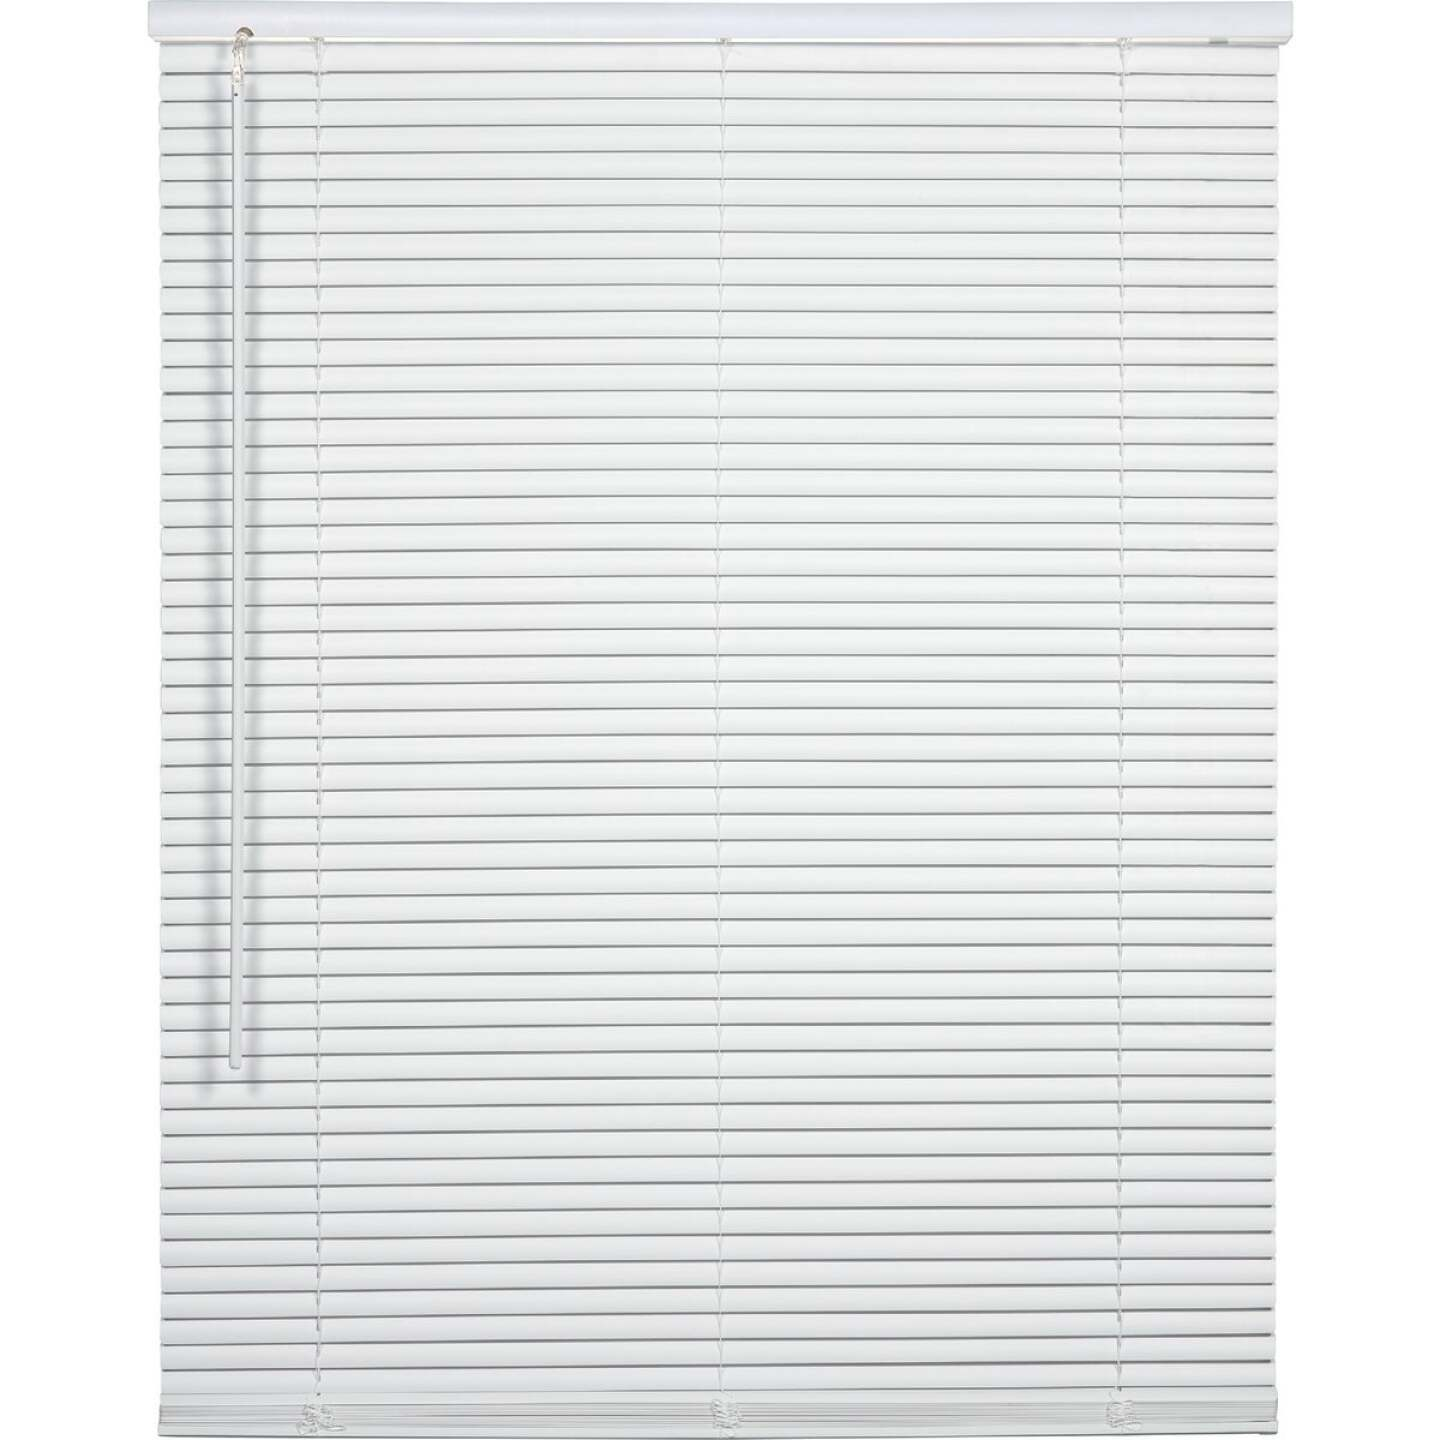 Home Impressions 40 In. x 72 In. x 1 In. White Vinyl Light Filtering Cordless Mini Blind Image 1